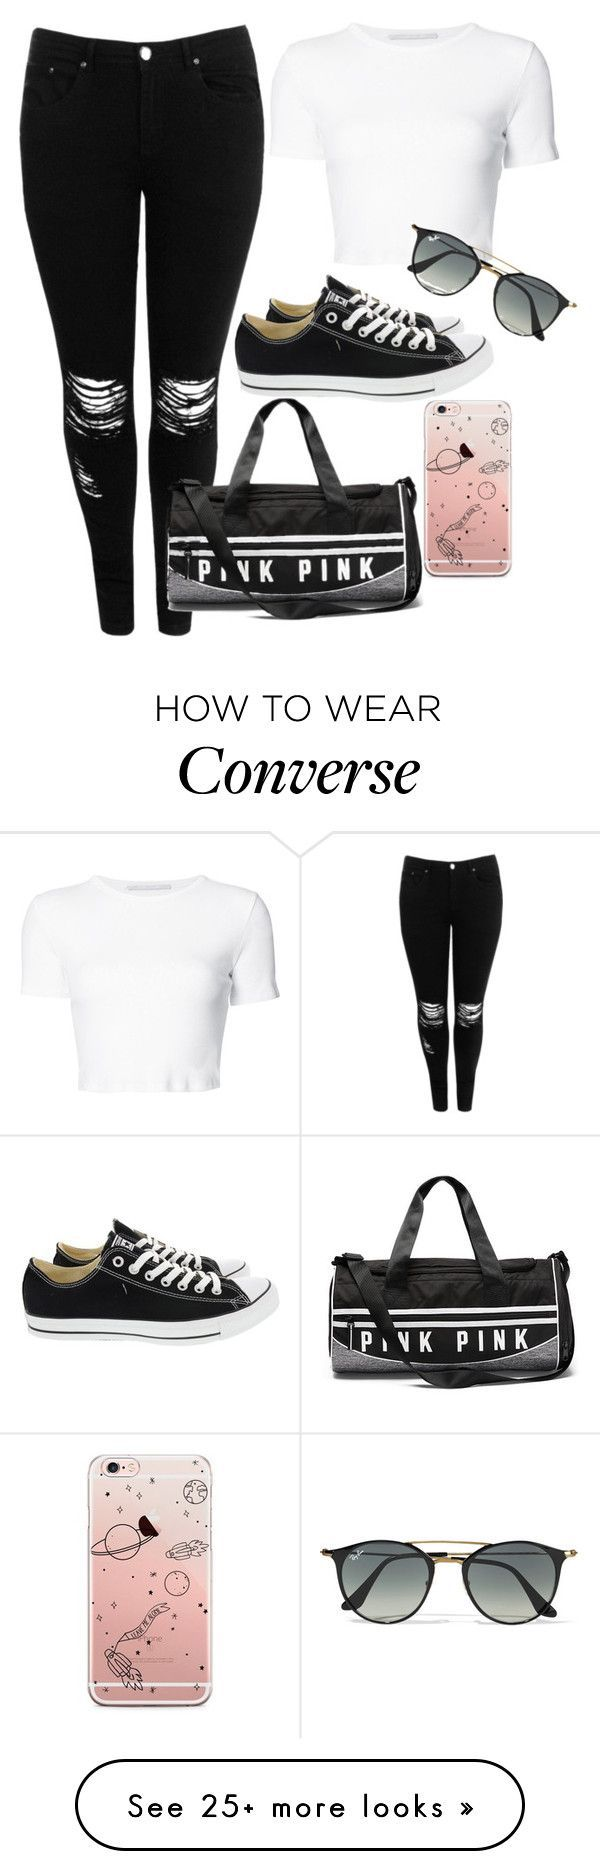 """Away"" by sugarbubbles on Polyvore featuring Boohoo, Rosetta Getty, Converse and Ray-Ban"